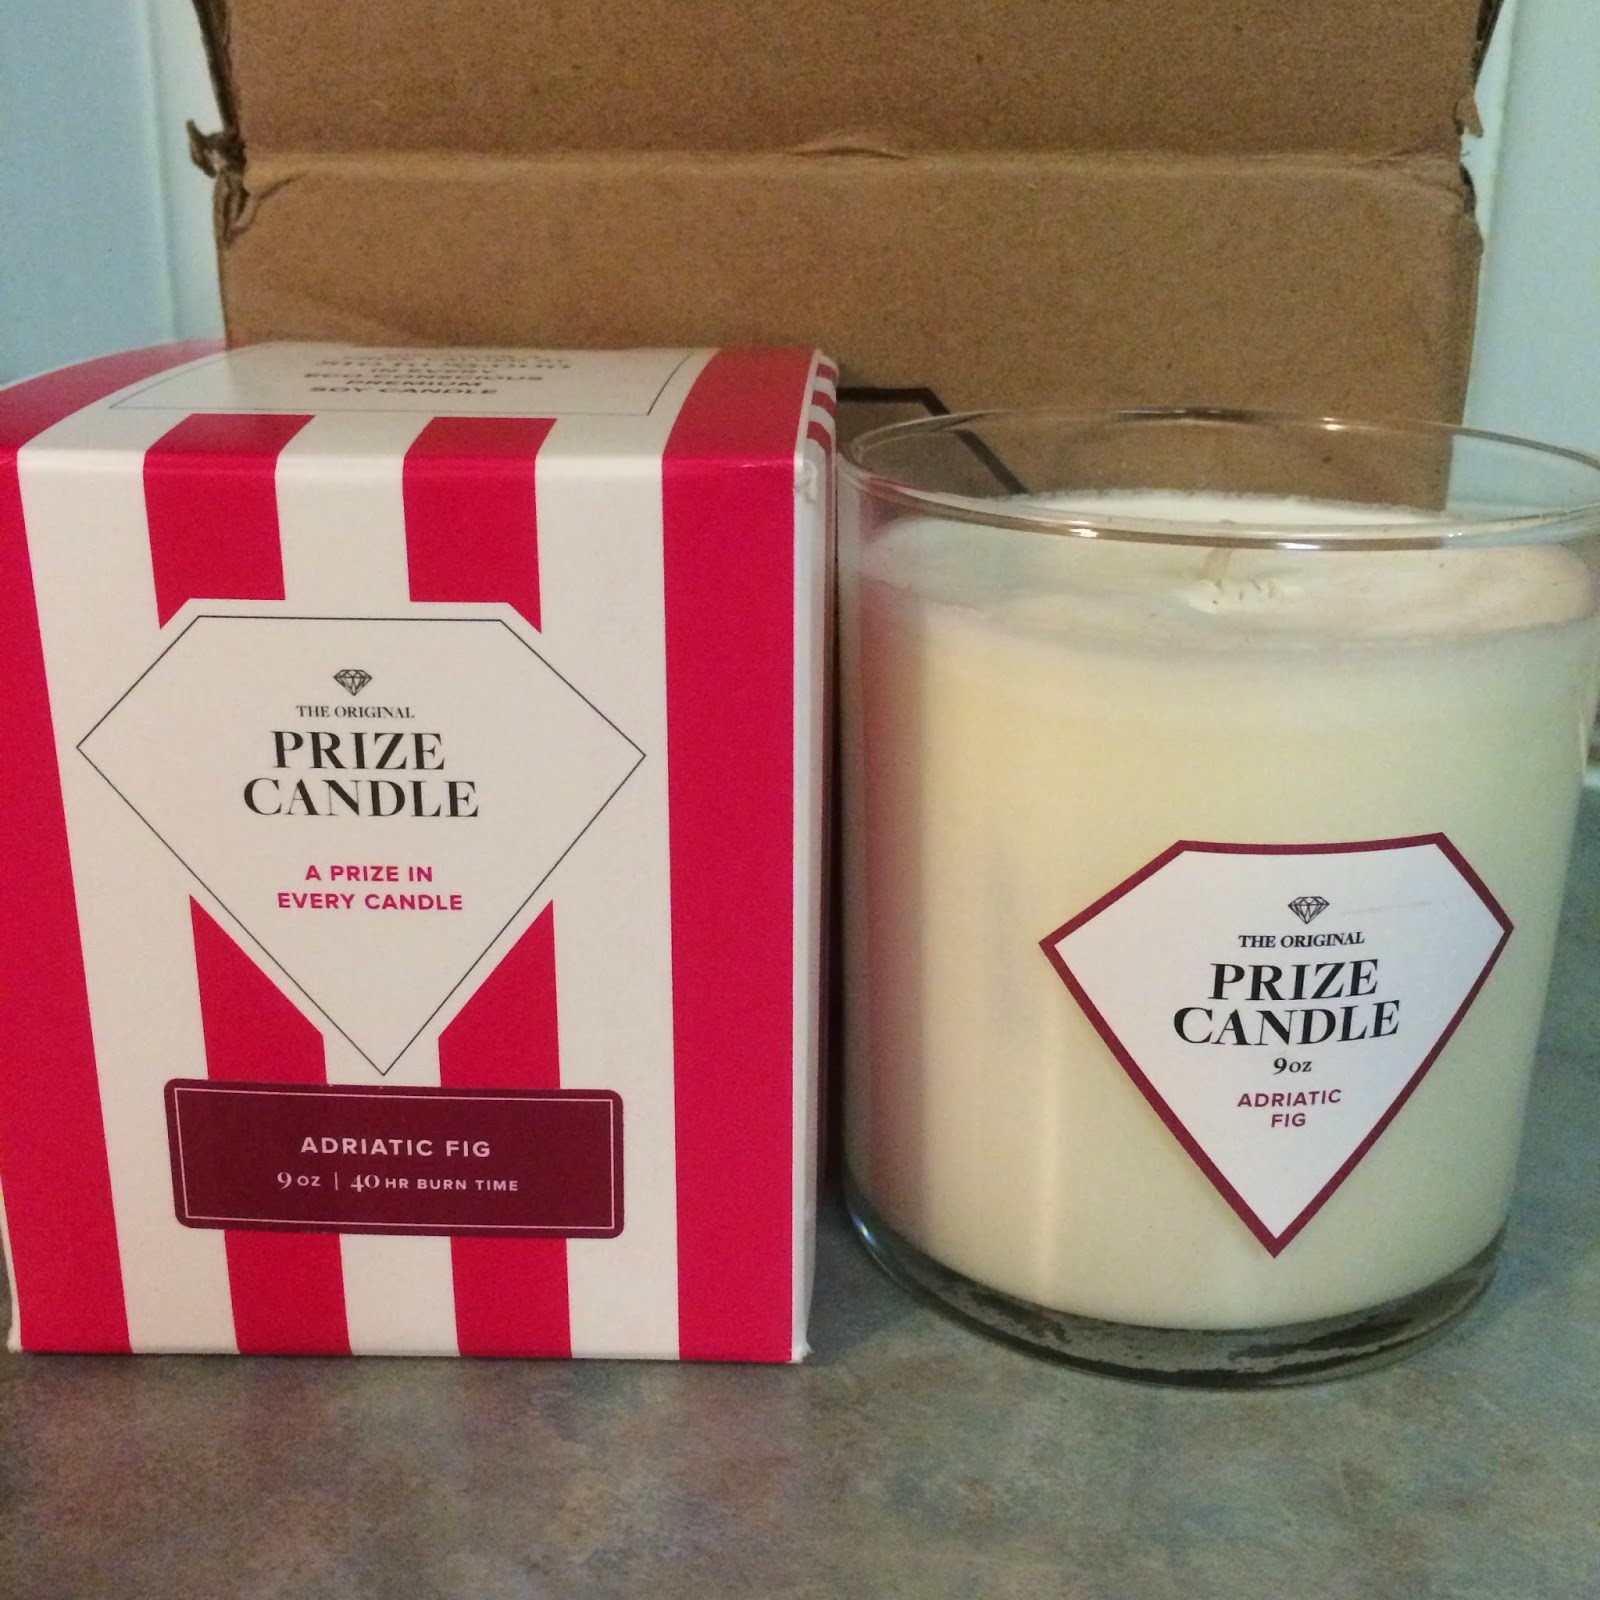 Prize Candle #review #flblogger #prizecandle